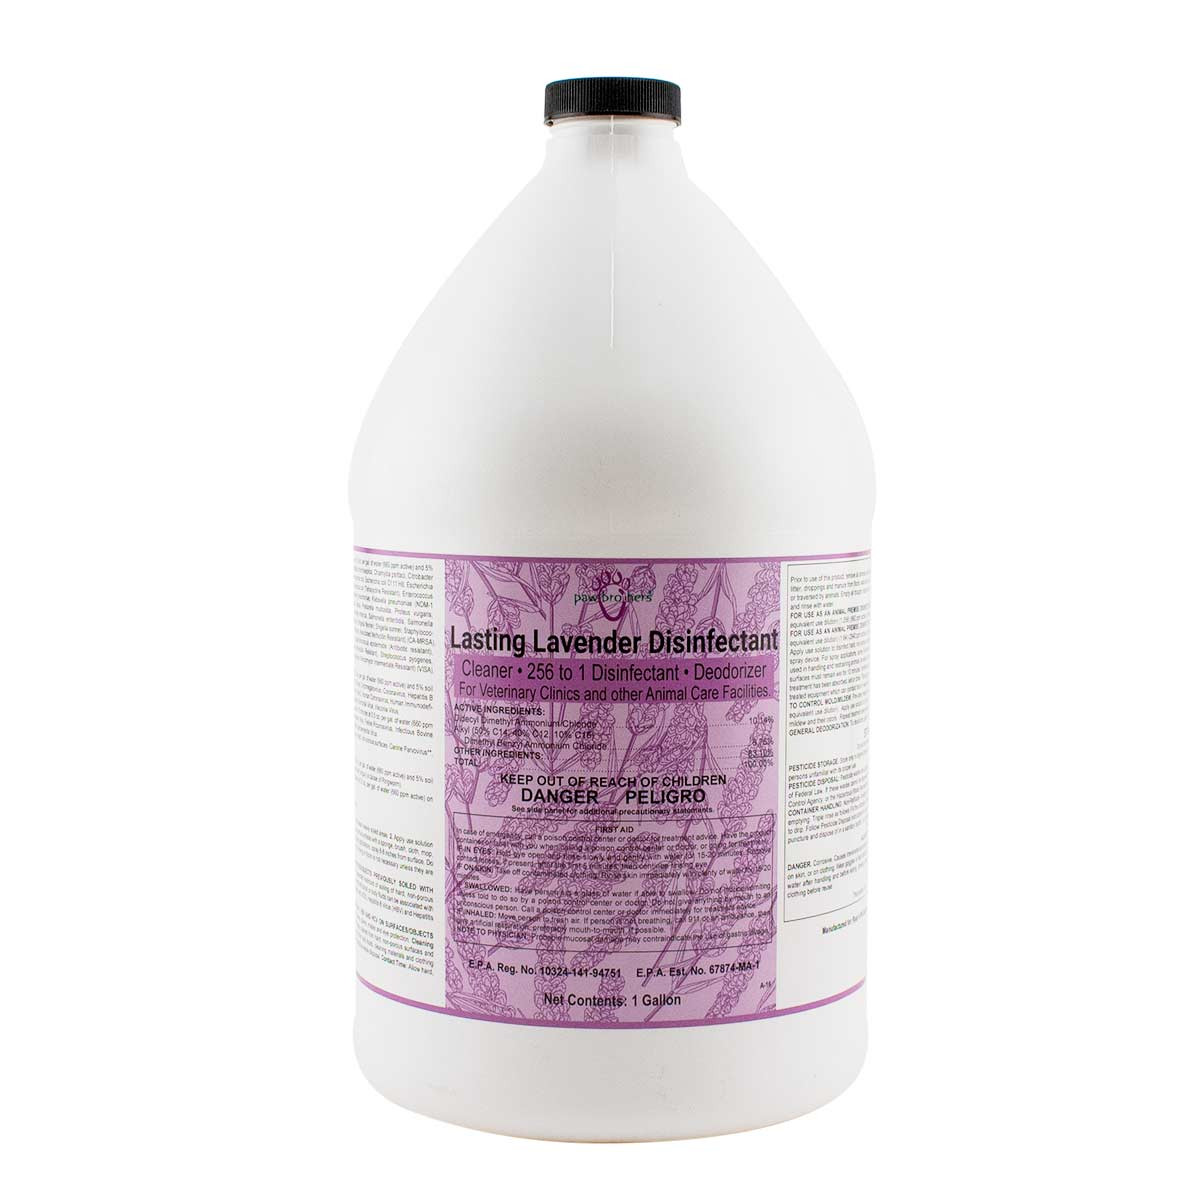 Paw Brothers Lasting Lavender 256 Disinfectant